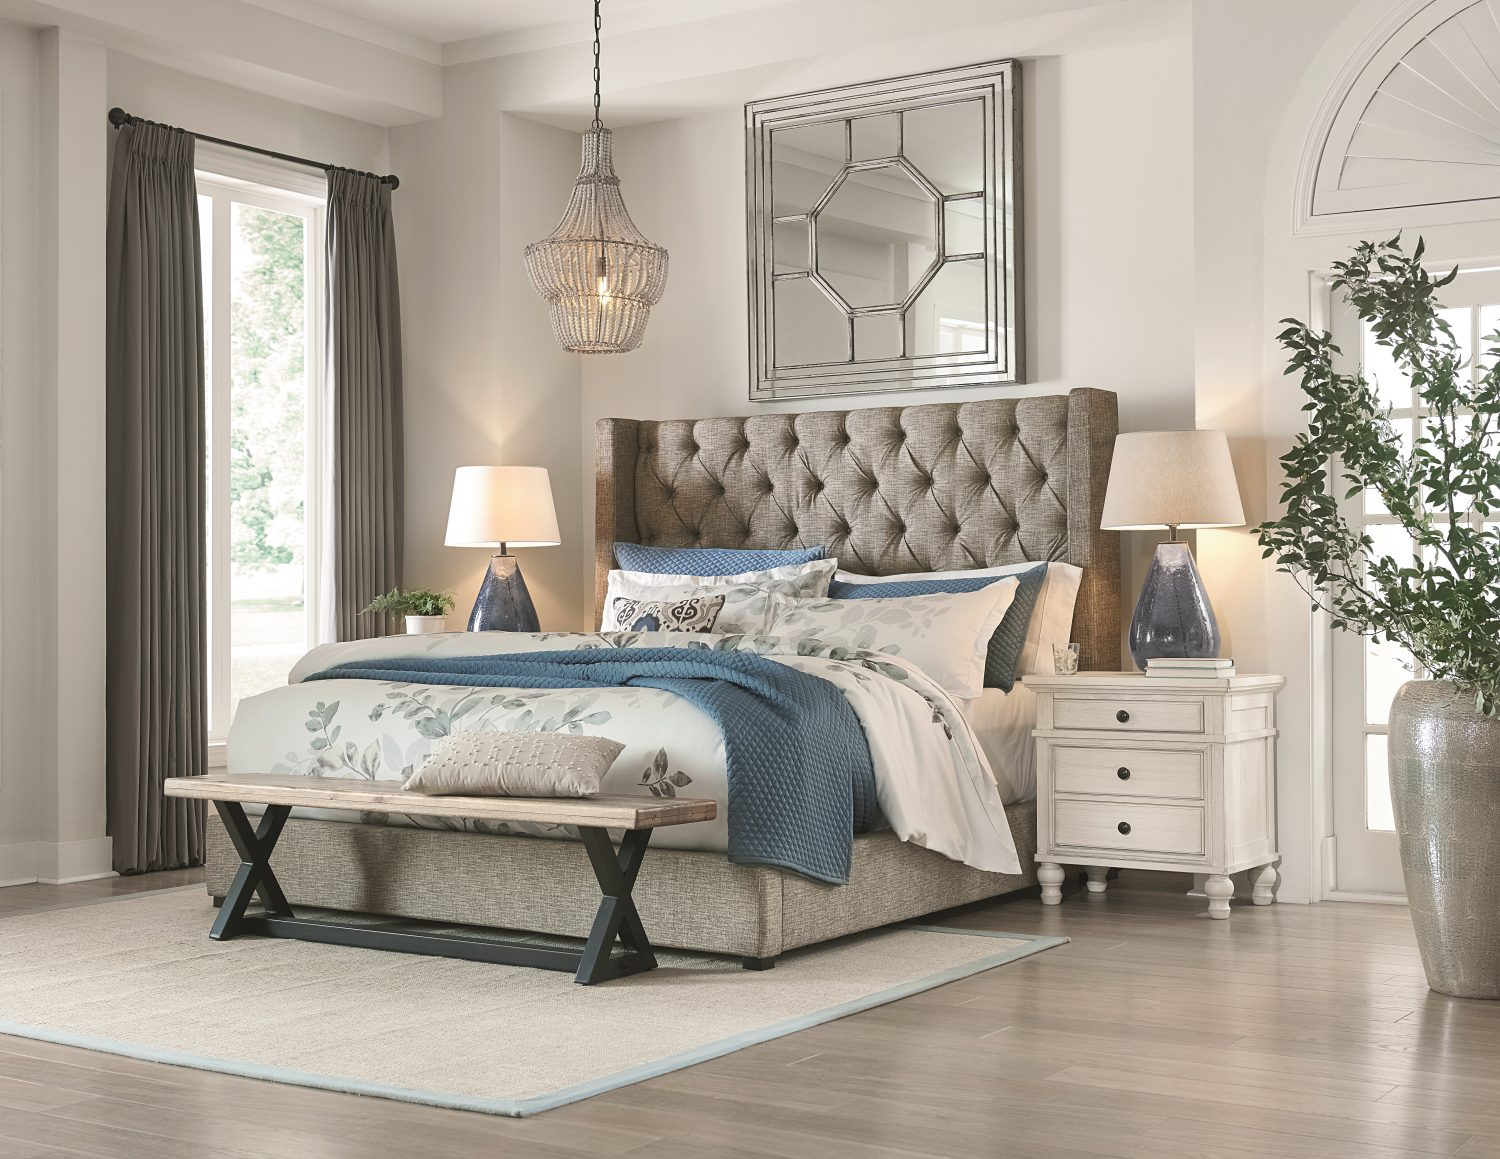 Our Instagram Stars: The Sorinella Bed Edition - Ashley Furniture HomeStore Blog